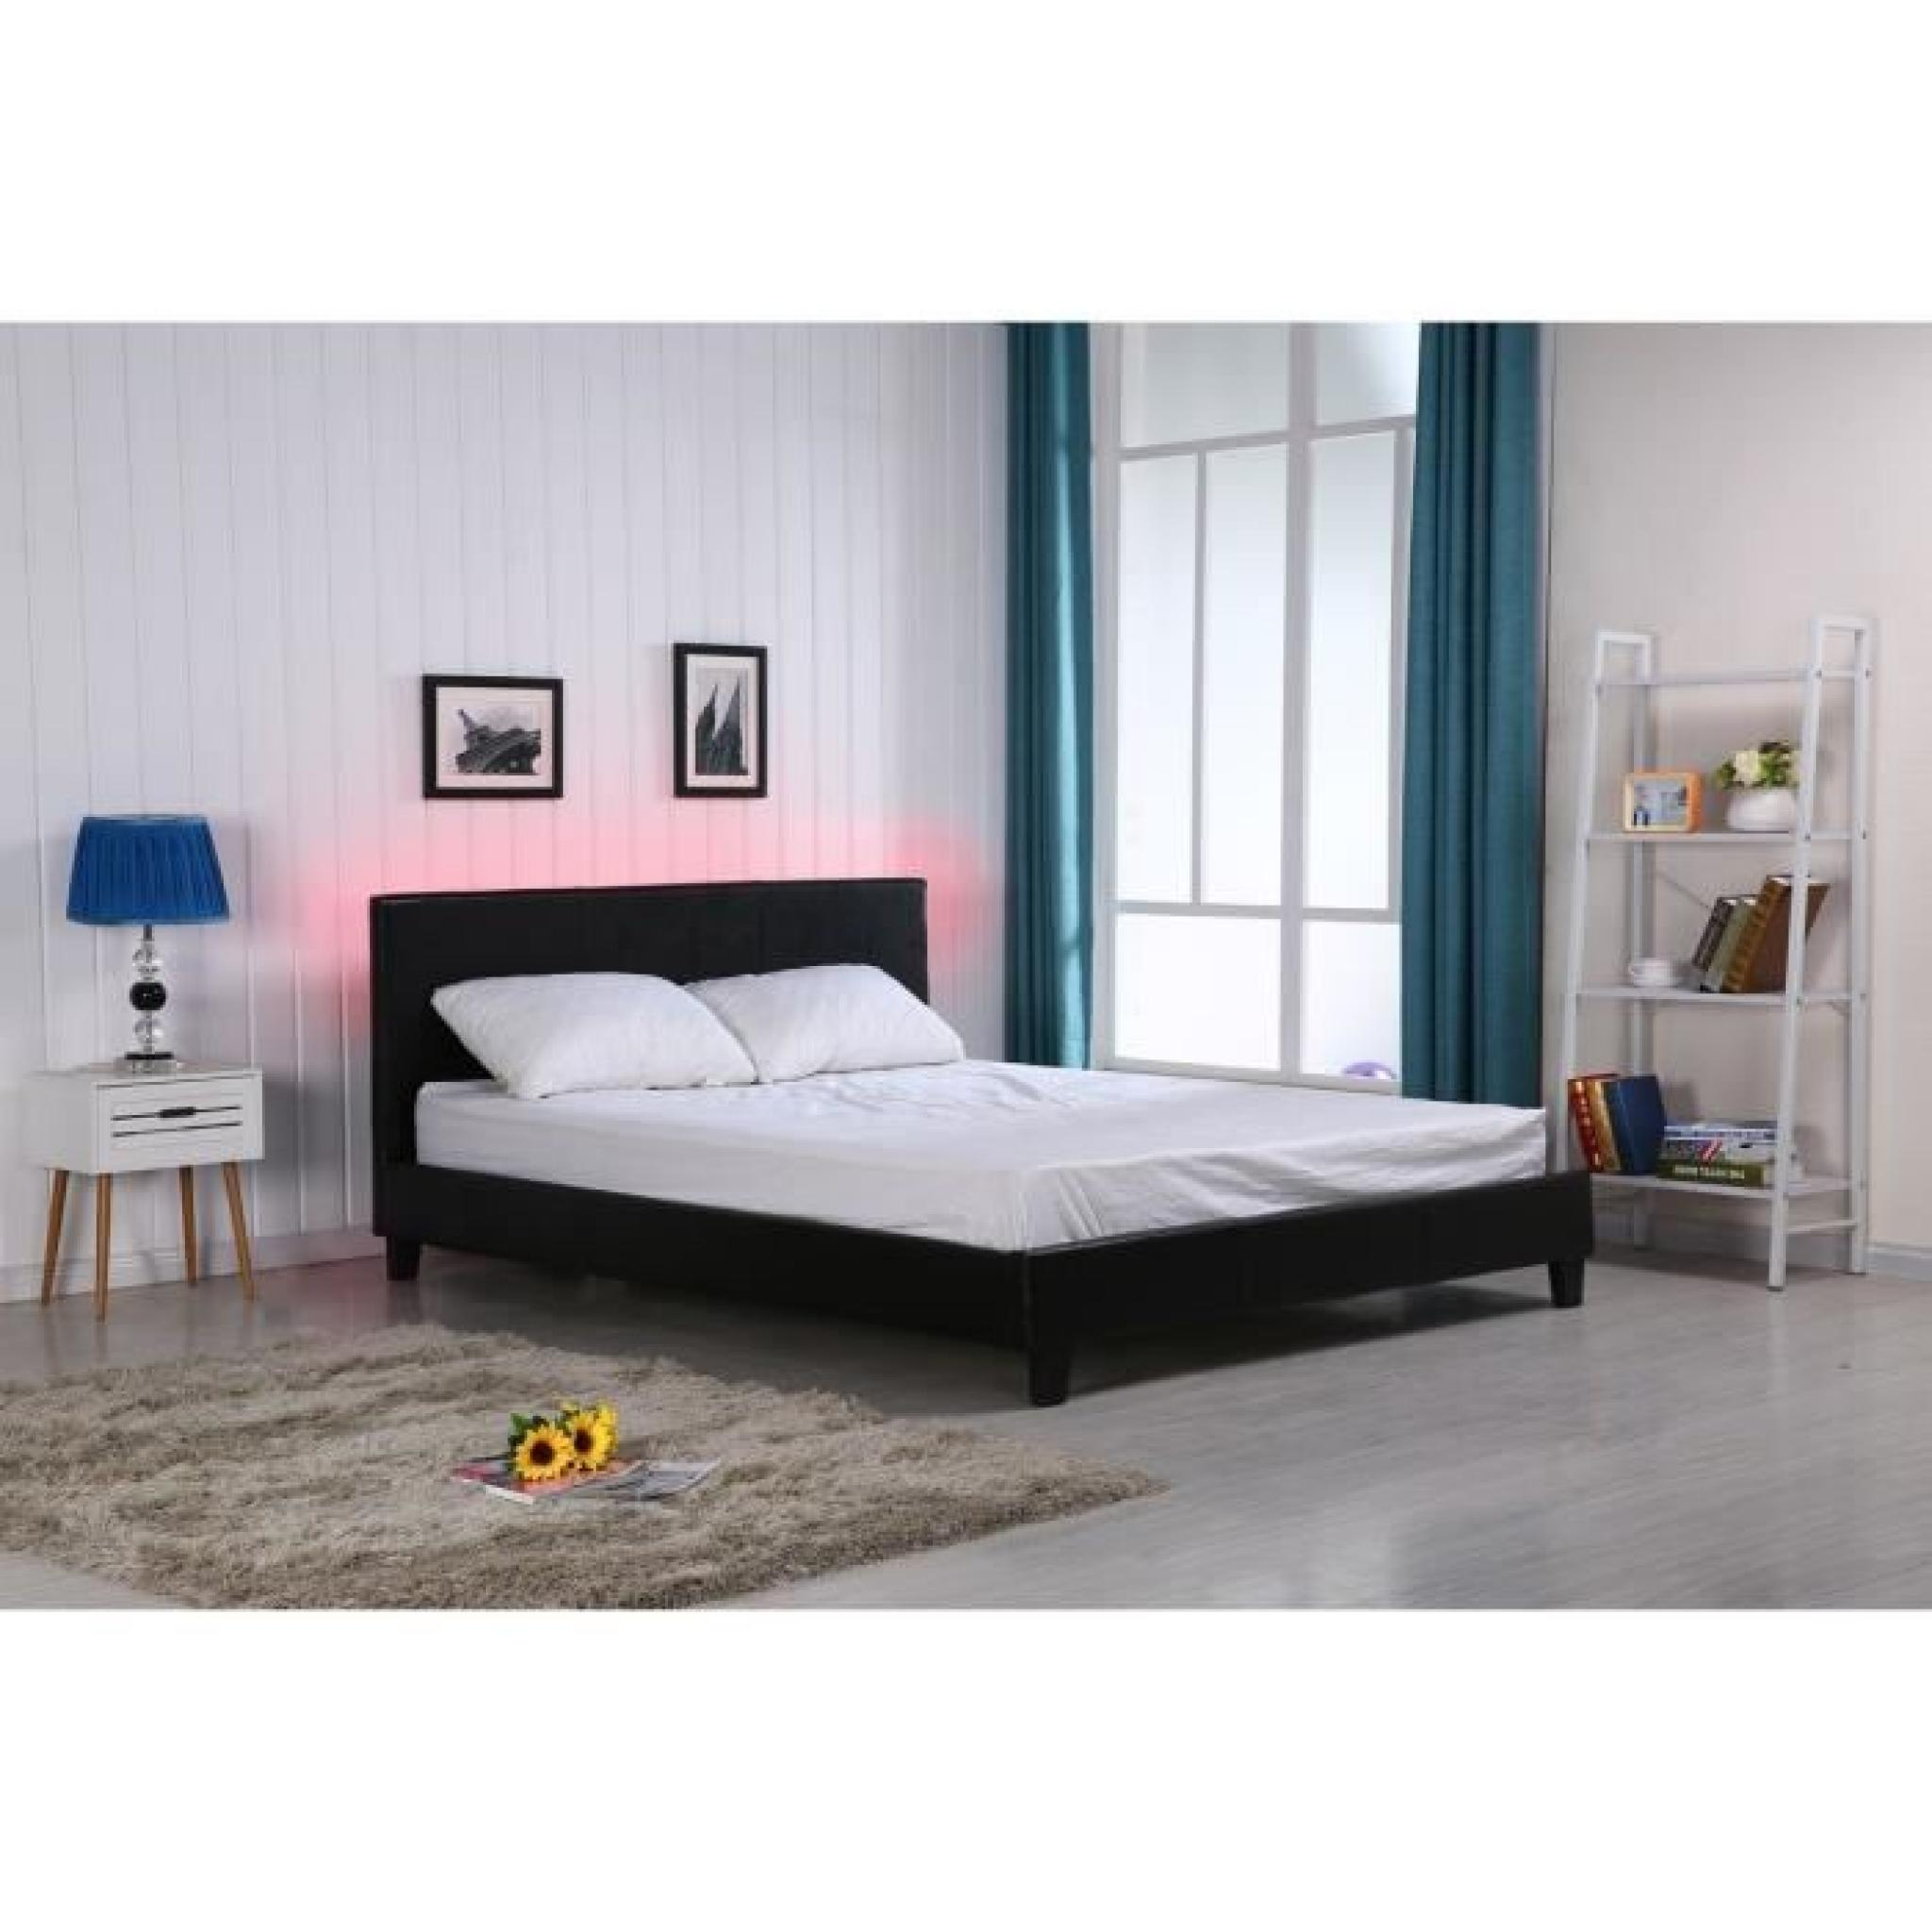 vegas lit led adulte noir 160x200cm sommier t te de. Black Bedroom Furniture Sets. Home Design Ideas